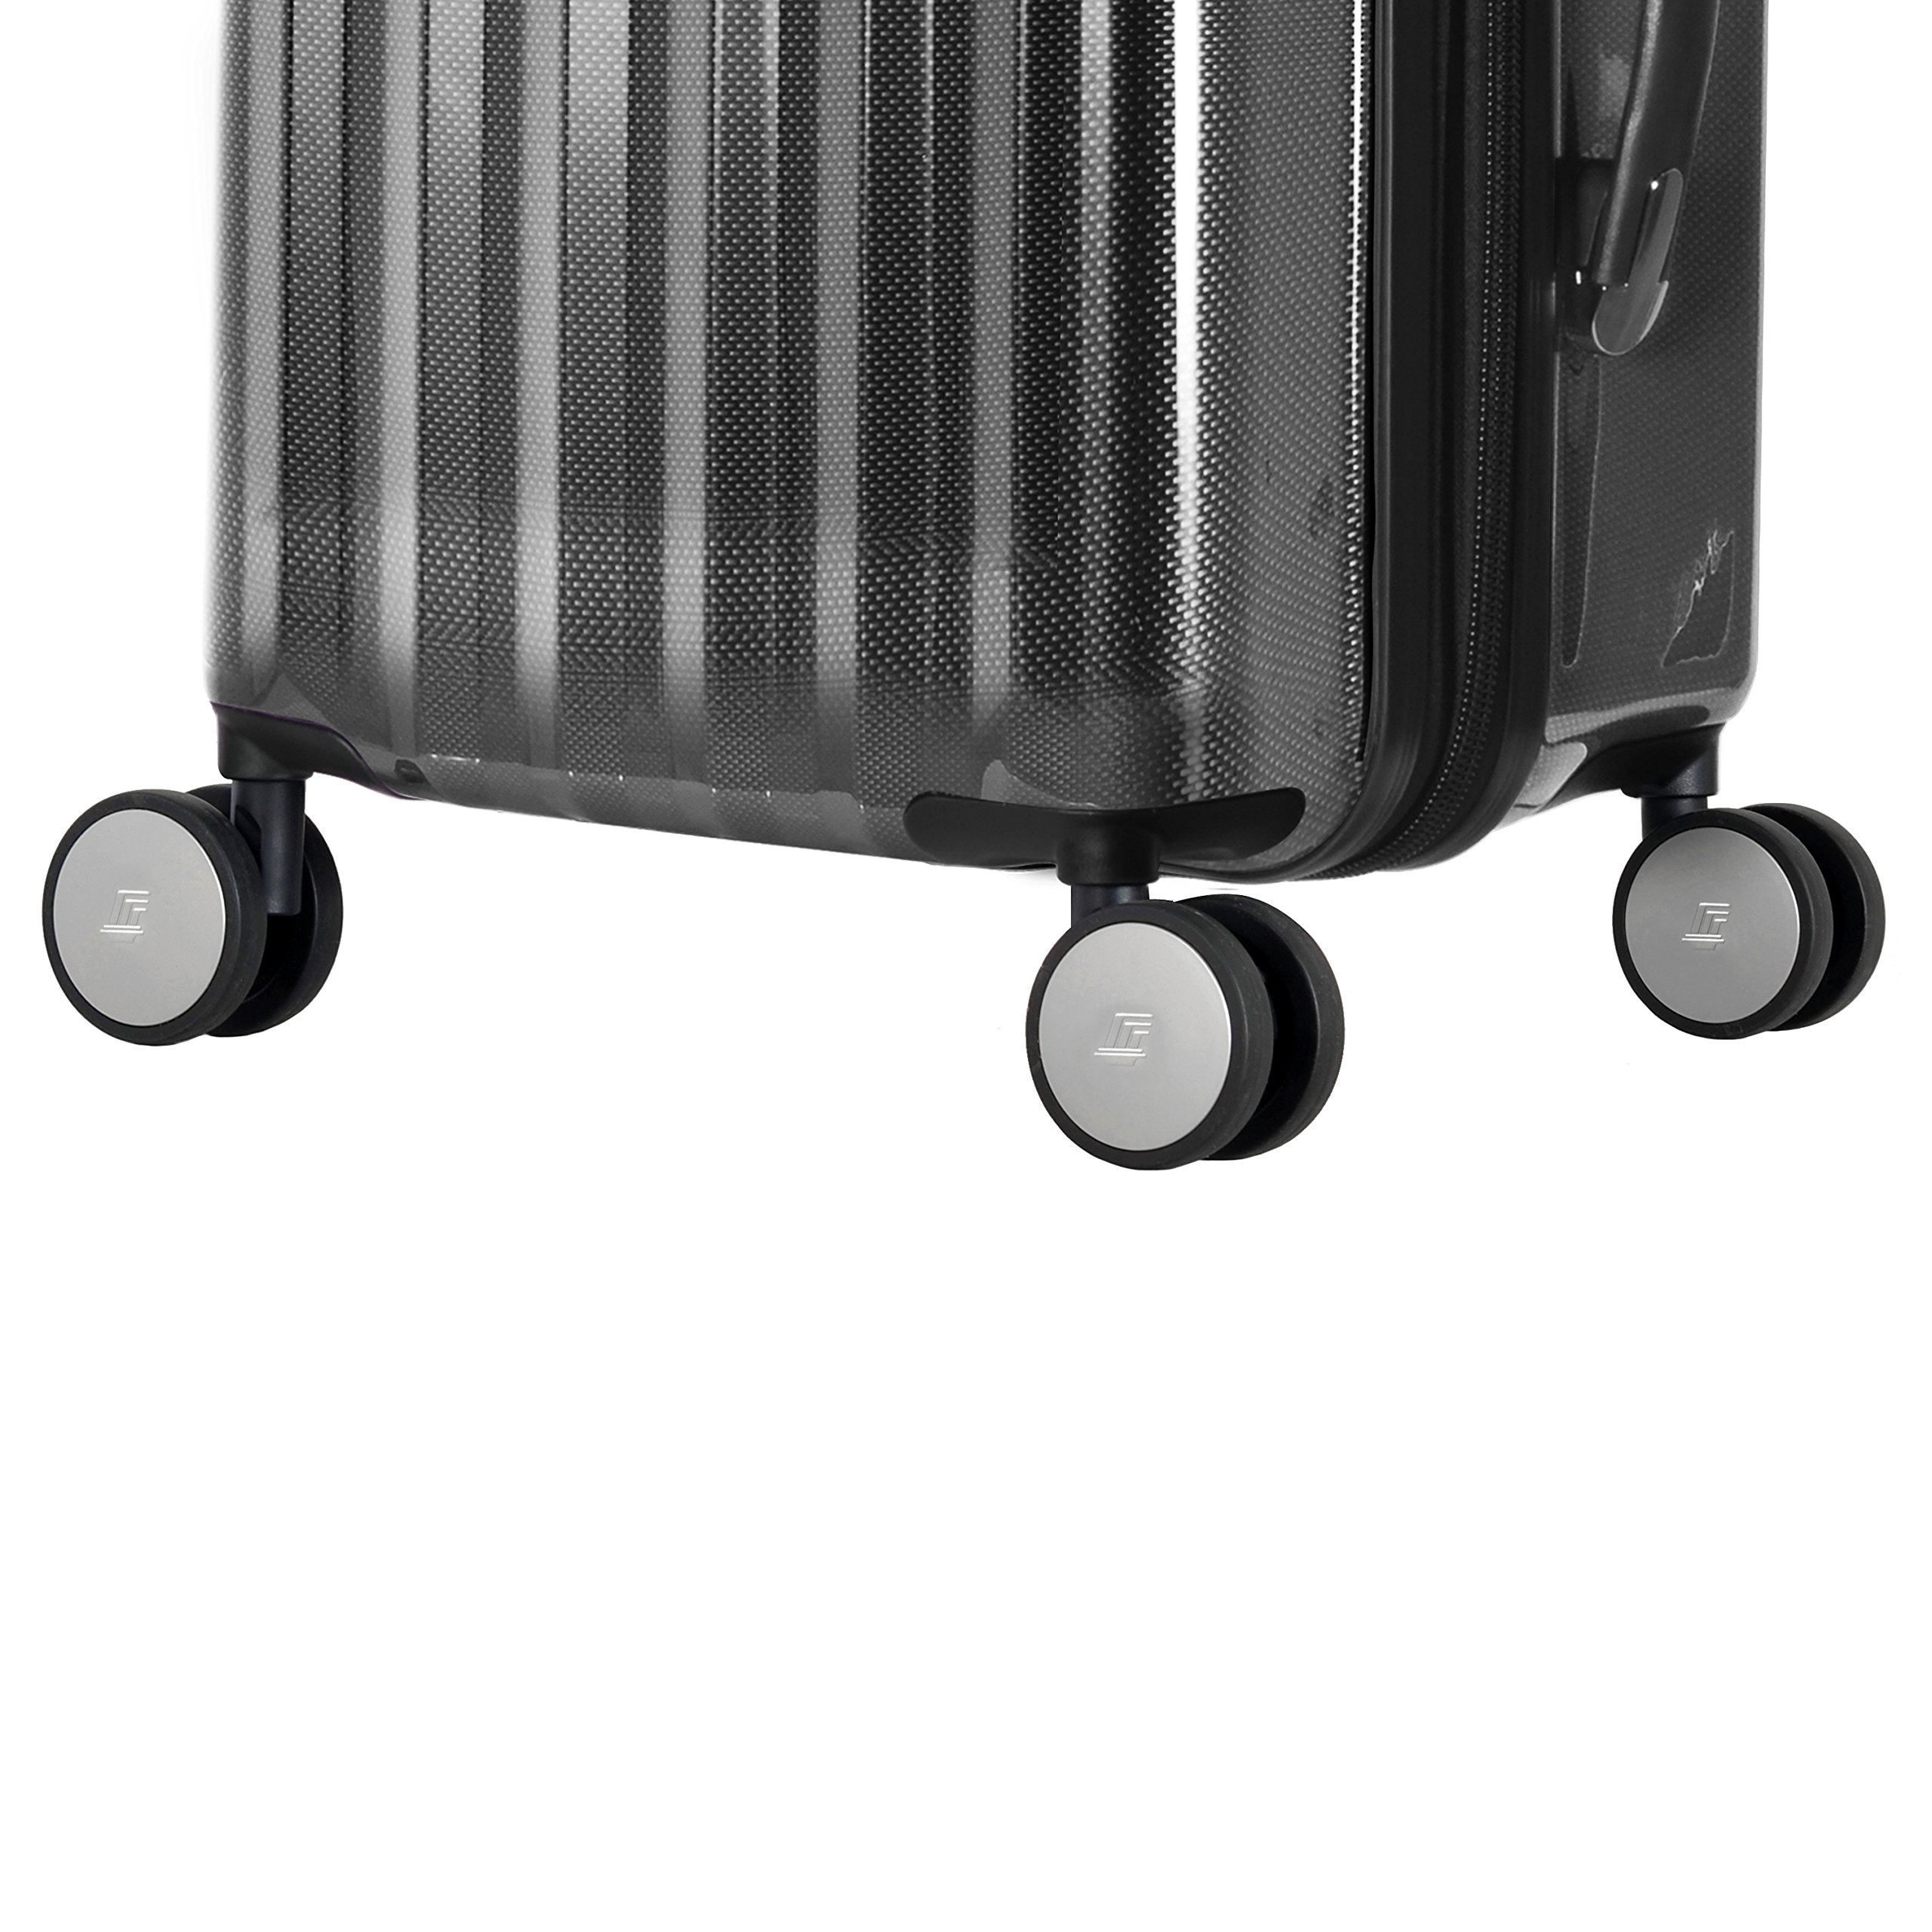 Olympia Luggage Titan 21 Inch Expandable Carry-On Hardside Spinner, Black, One Size by Olympia (Image #5)